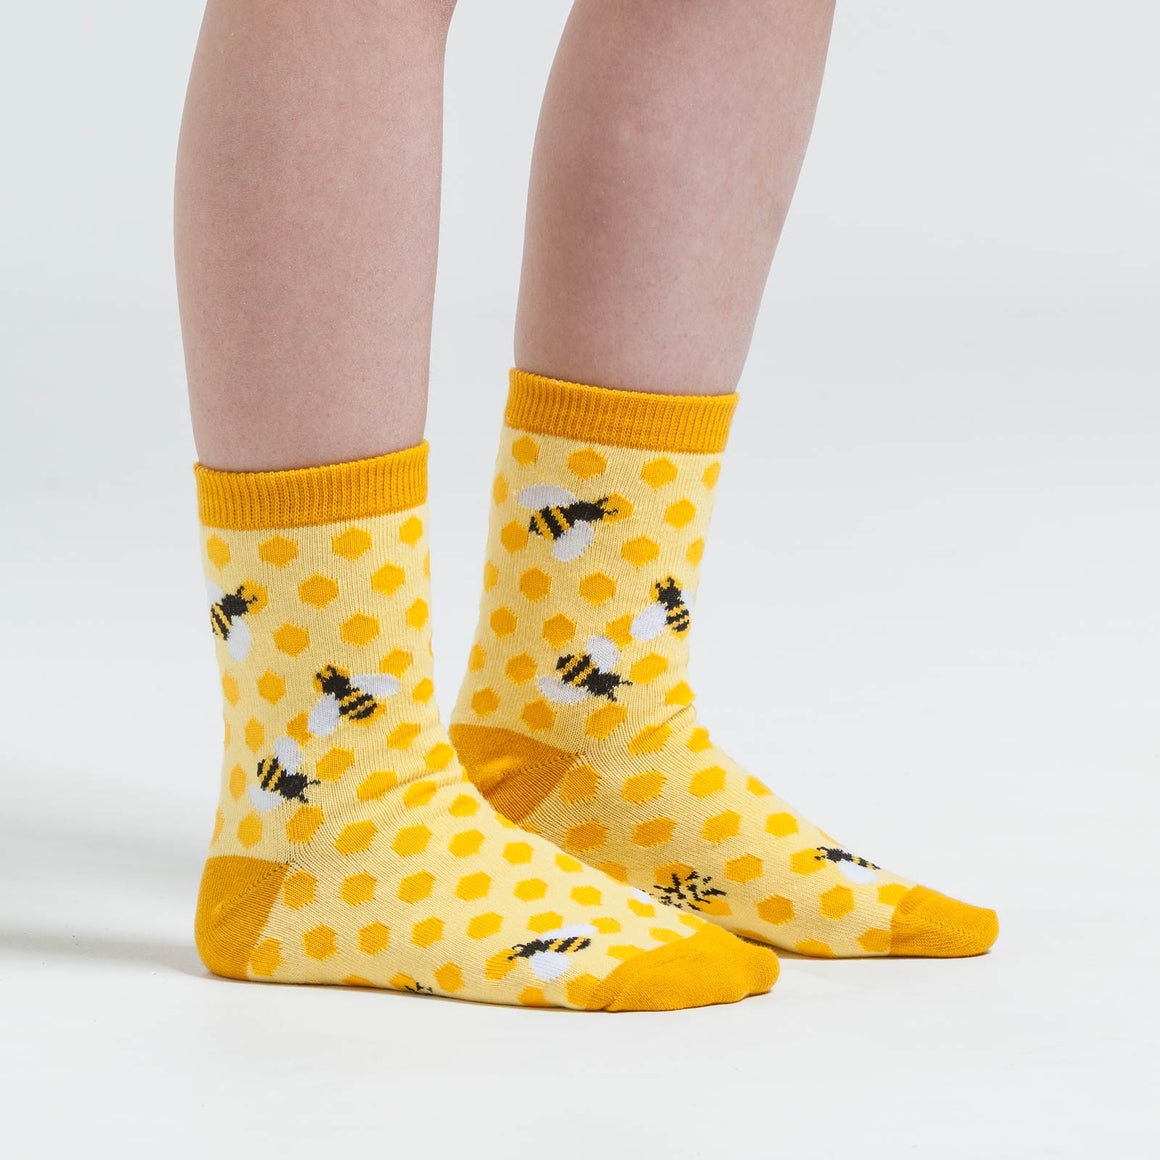 Busy bee socks for kids who are always buzzing